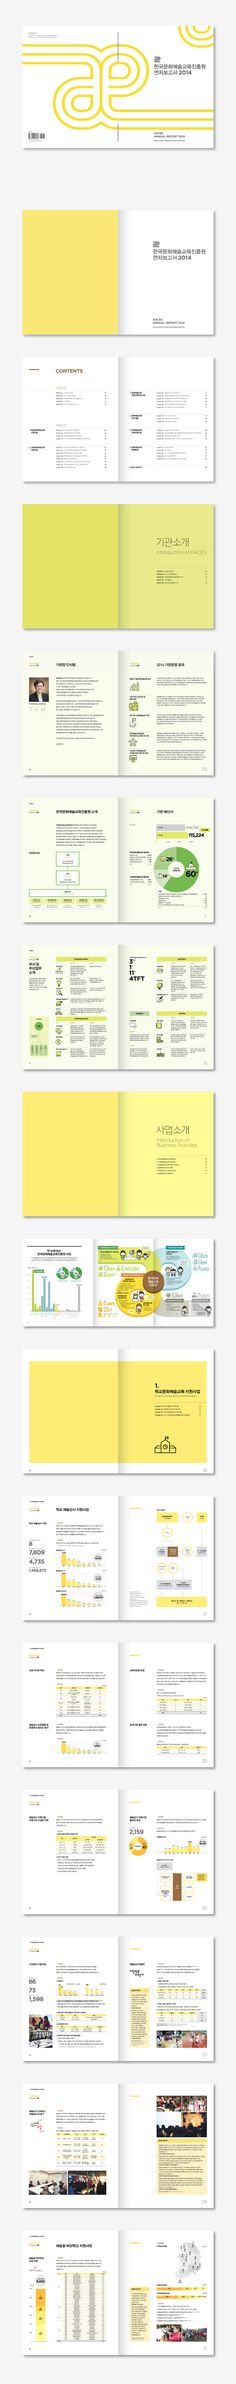 [한국문화예술교육진흥원] 연차보고서 2014 Magazine Layout Design, Book Design Layout, Print Layout, Art Design, Brochure Cover, Brochure Layout, Brochure Template, Yearbook Pages, Yearbook Layouts